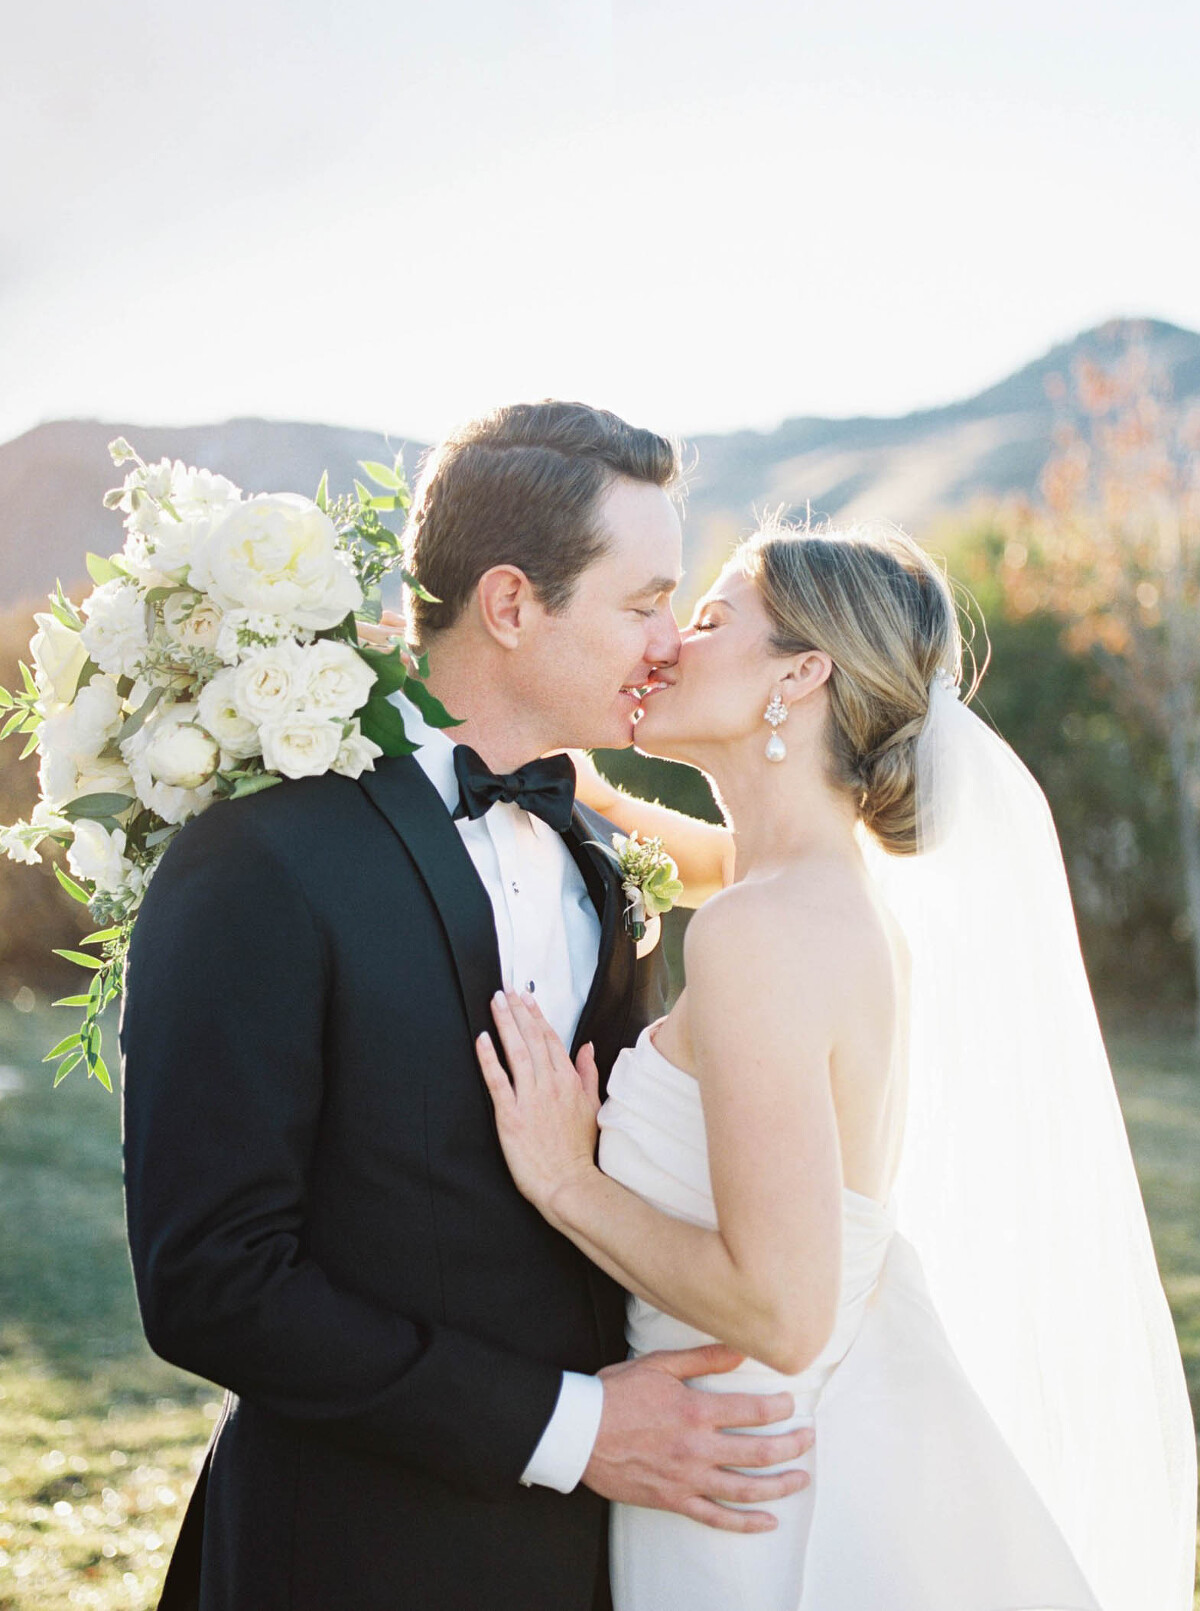 Light and Airy Bride and Groom wedding photos at The Manor House in Littleton, Colorado by Amanda Berube Photography